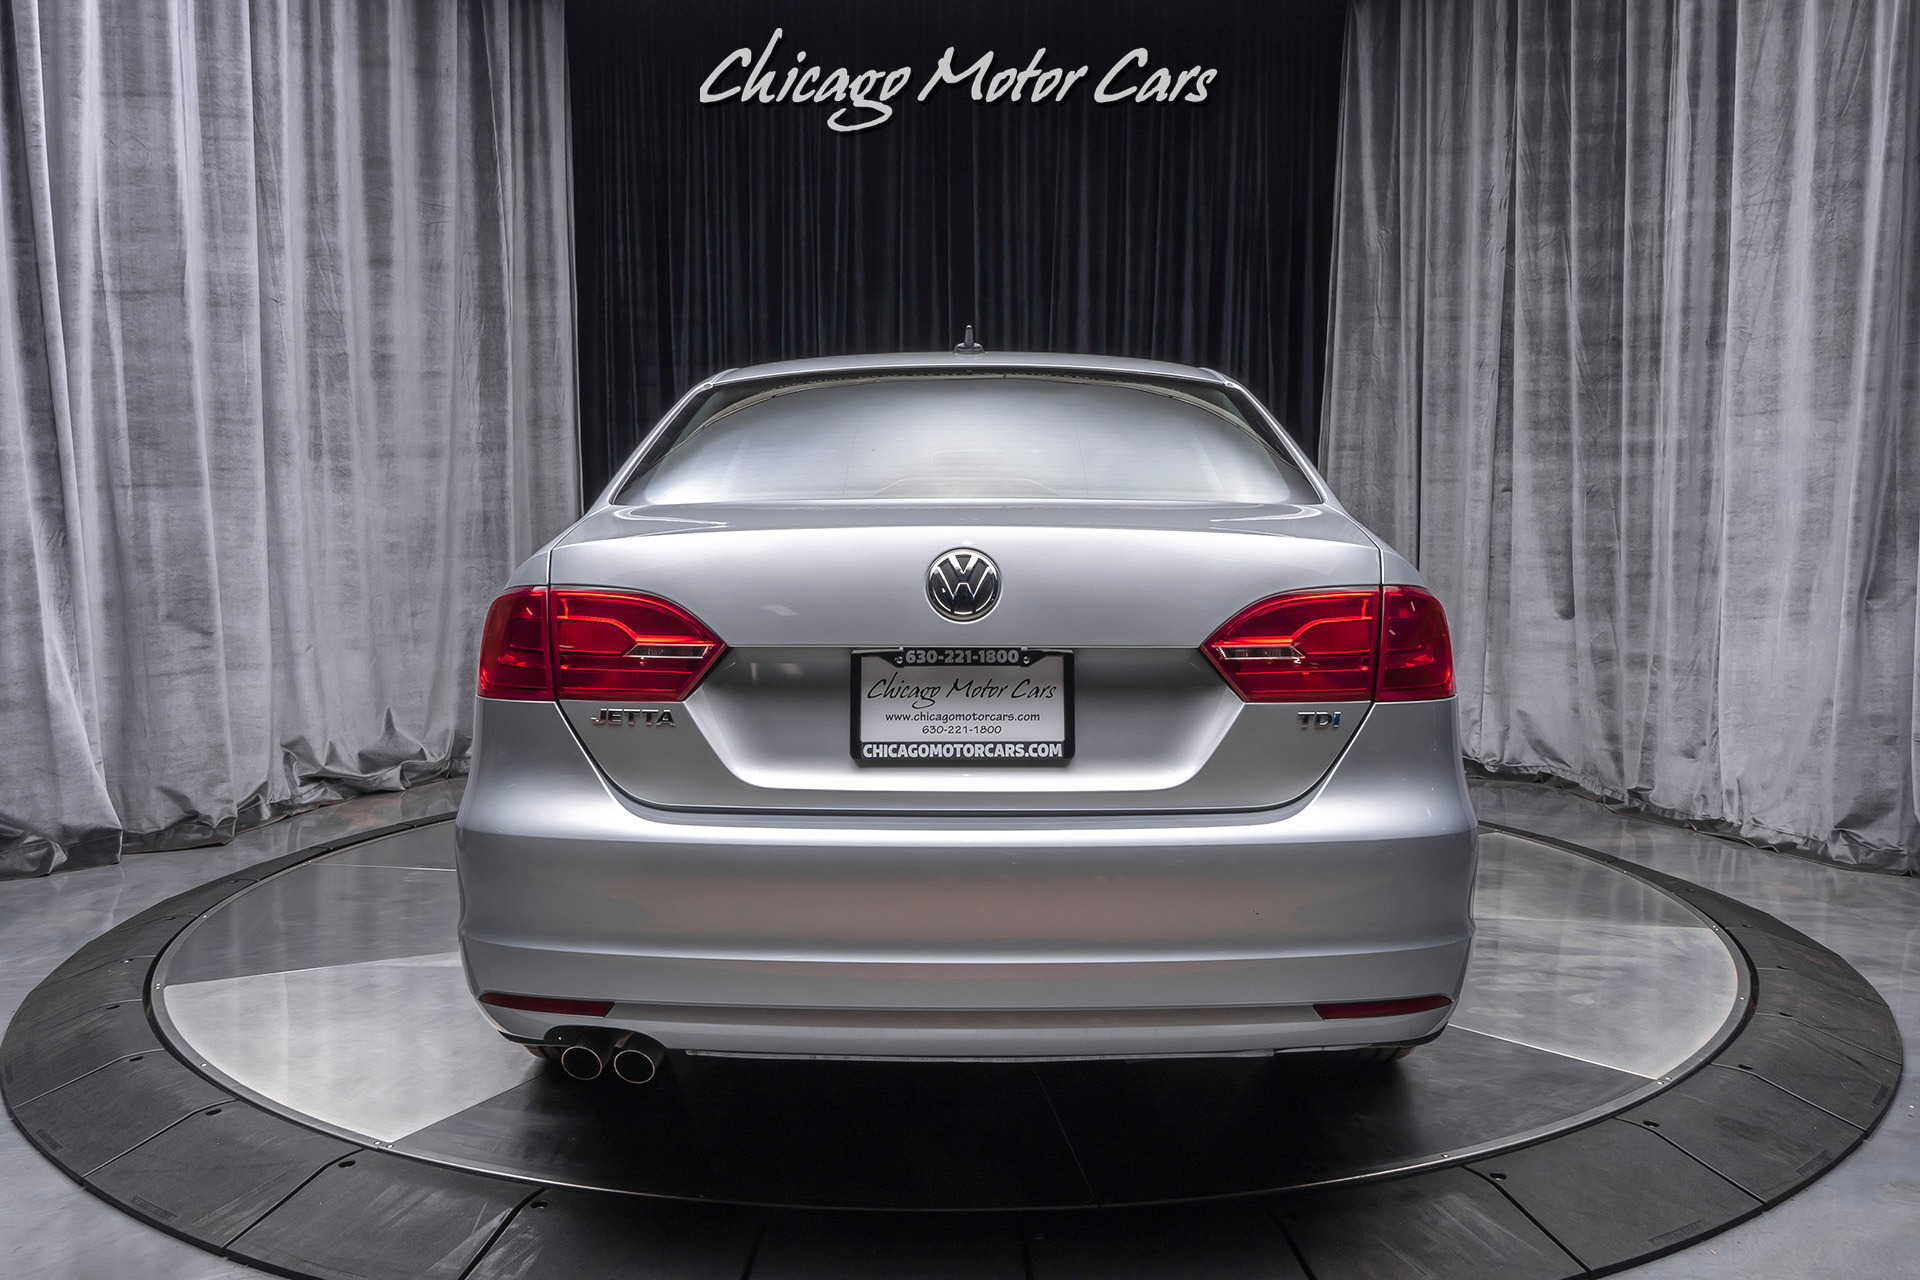 Used-2013-Volkswagen-Jetta-TDI-Sedan-EXCELLENT-DAILY-DRIVER